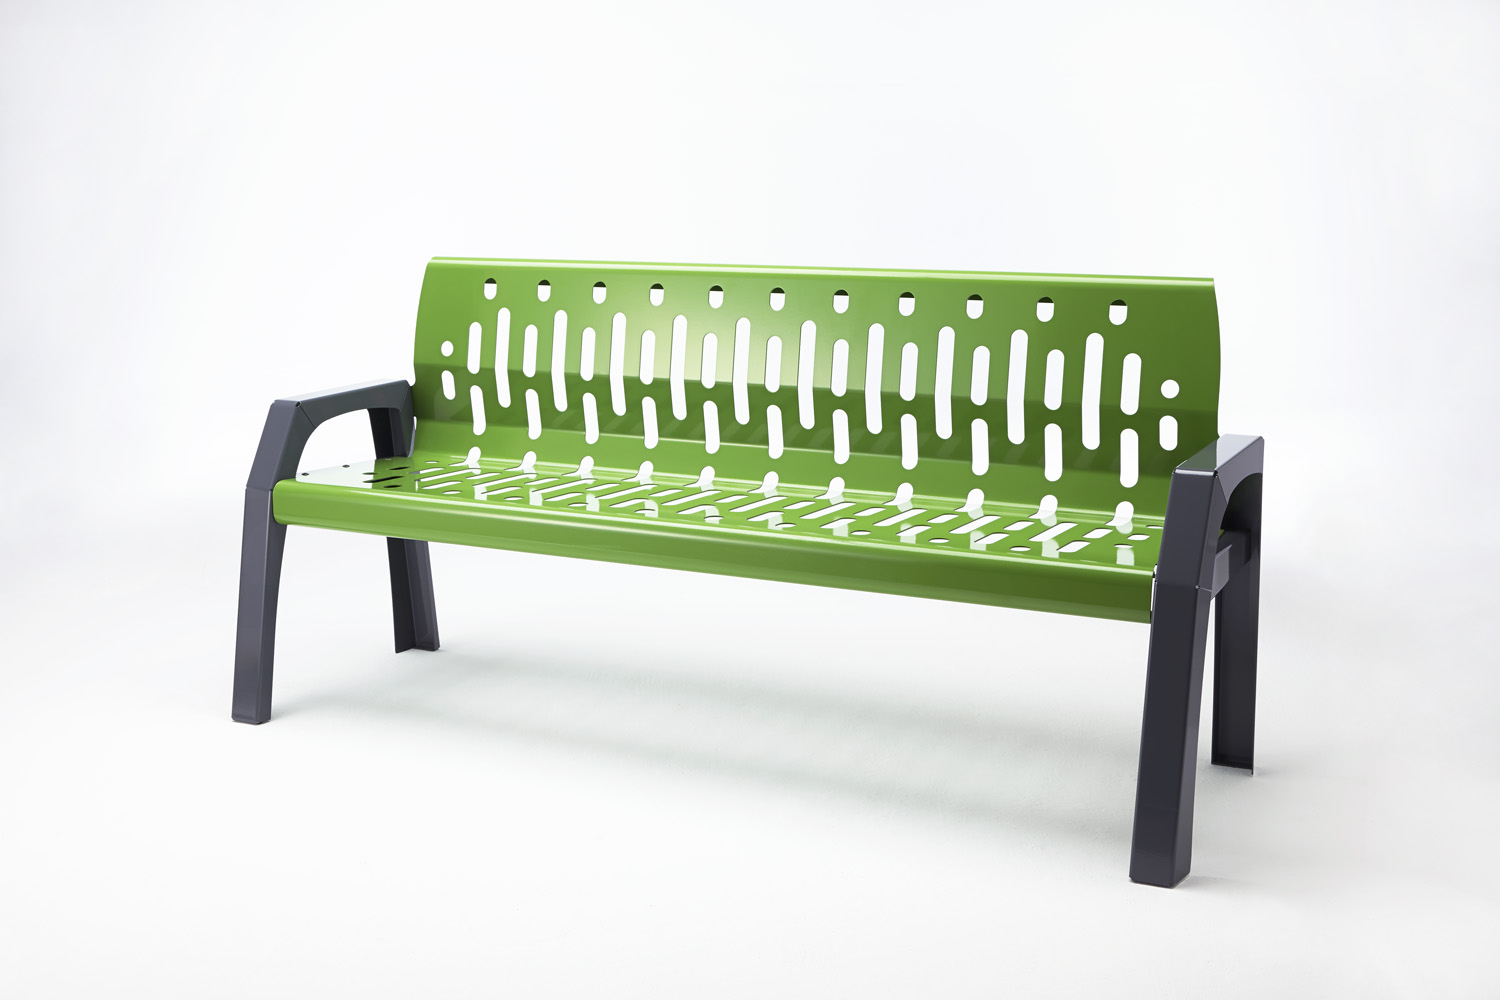 Frost_Site_Furnishings_Stream_Bench_6.jpg